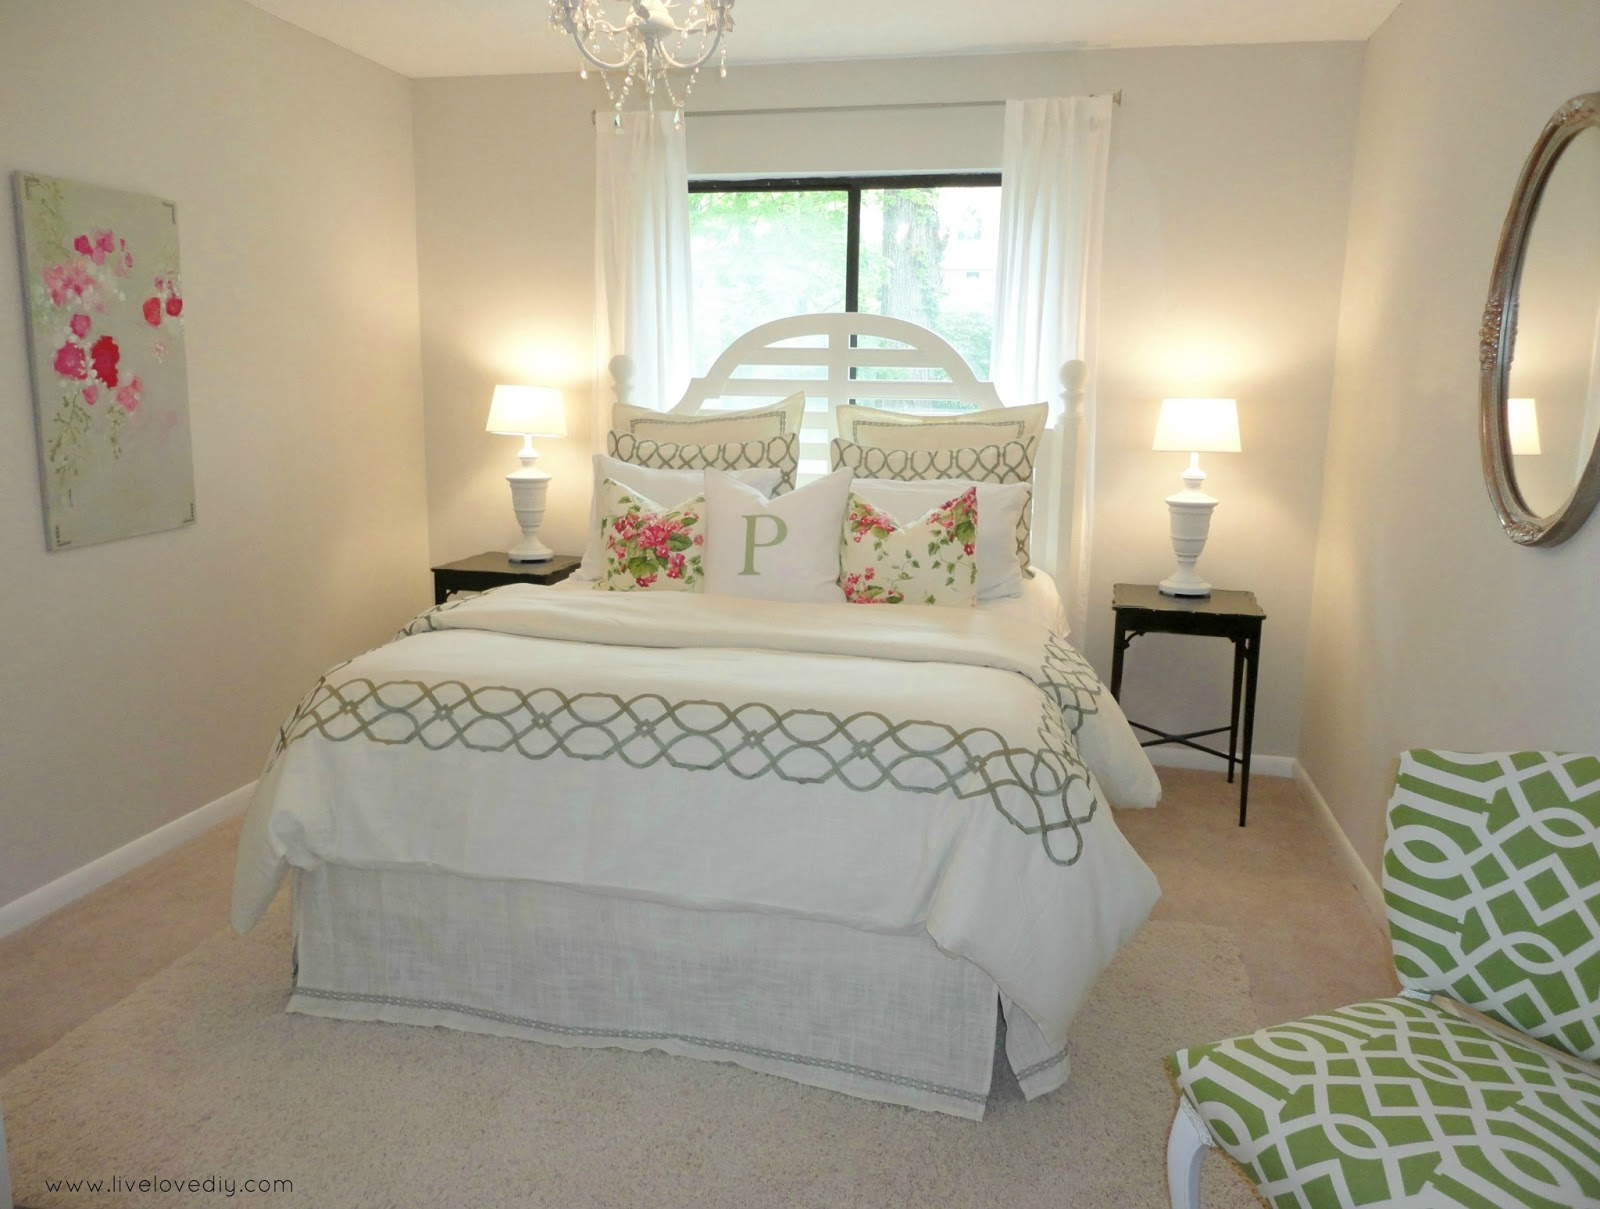 Livelovediy Decorating Bedrooms With Secondhand Finds The Guest Ideas For Decorating Bedroom